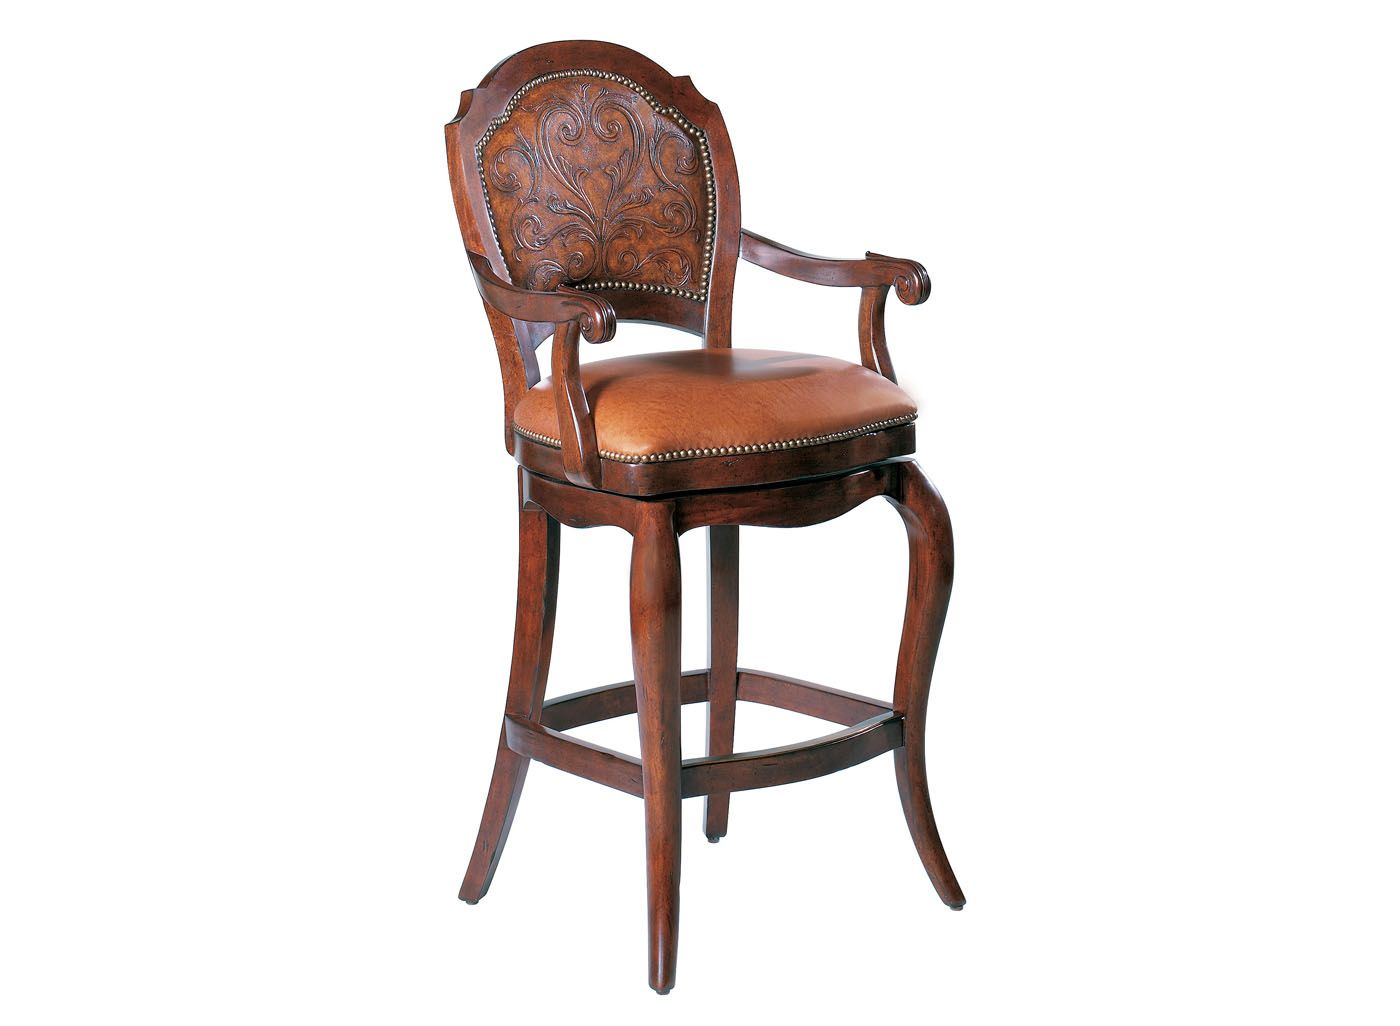 Furniture Cool Awesome Wood Toreador Leather Swivel Bar Stool With Back Design And Arm Also Soft Brown L Leather Swivel Bar Stools Bar Stools Swivel Bar Stools